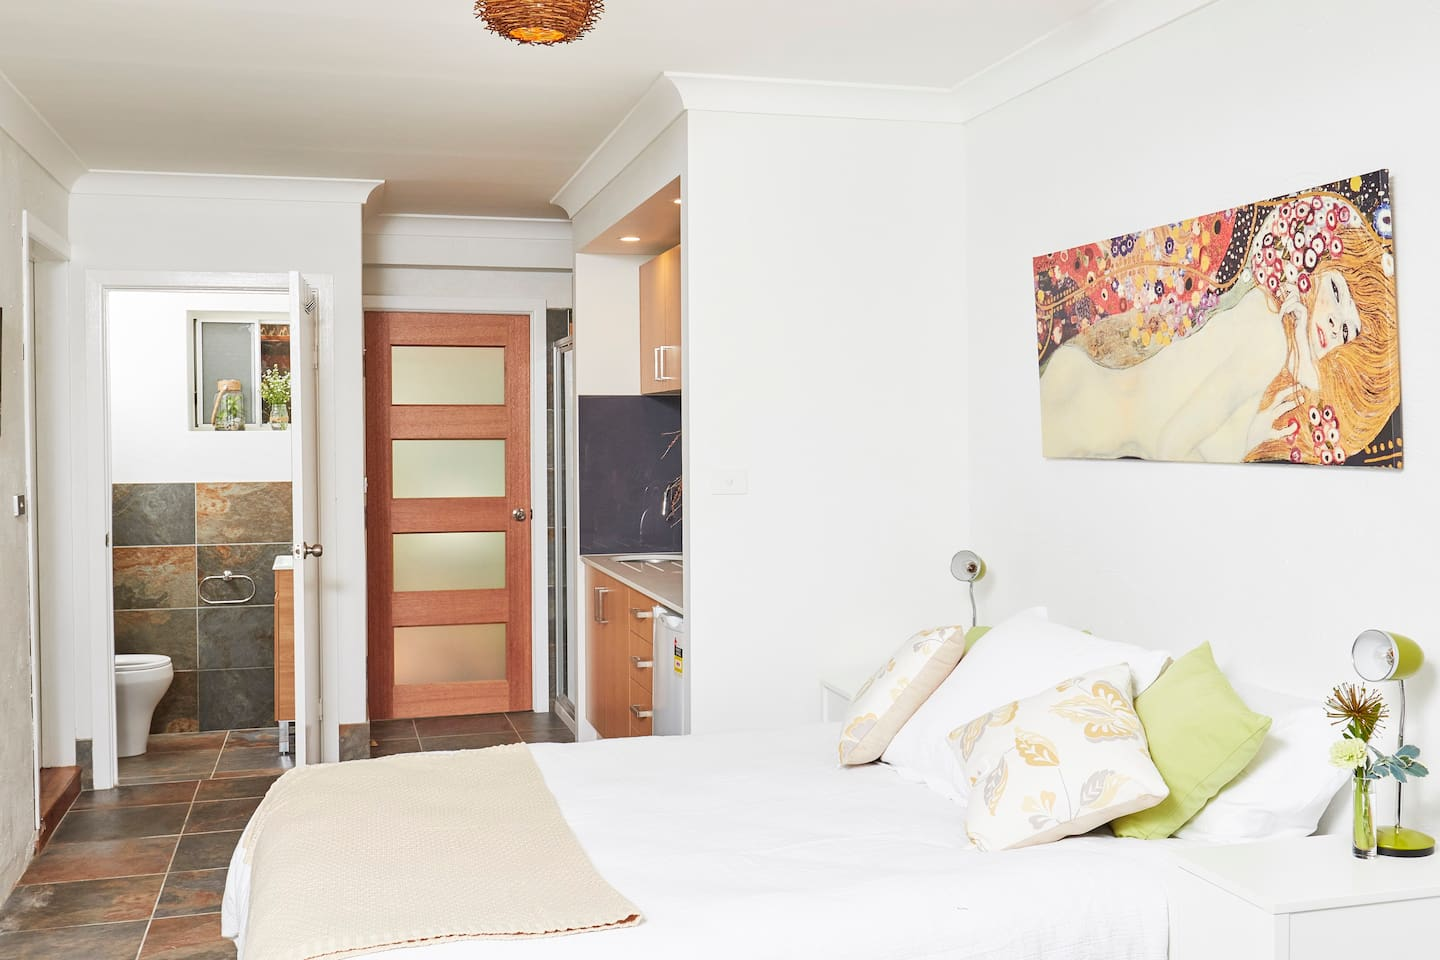 Brand new stylish private studio with queen size bed